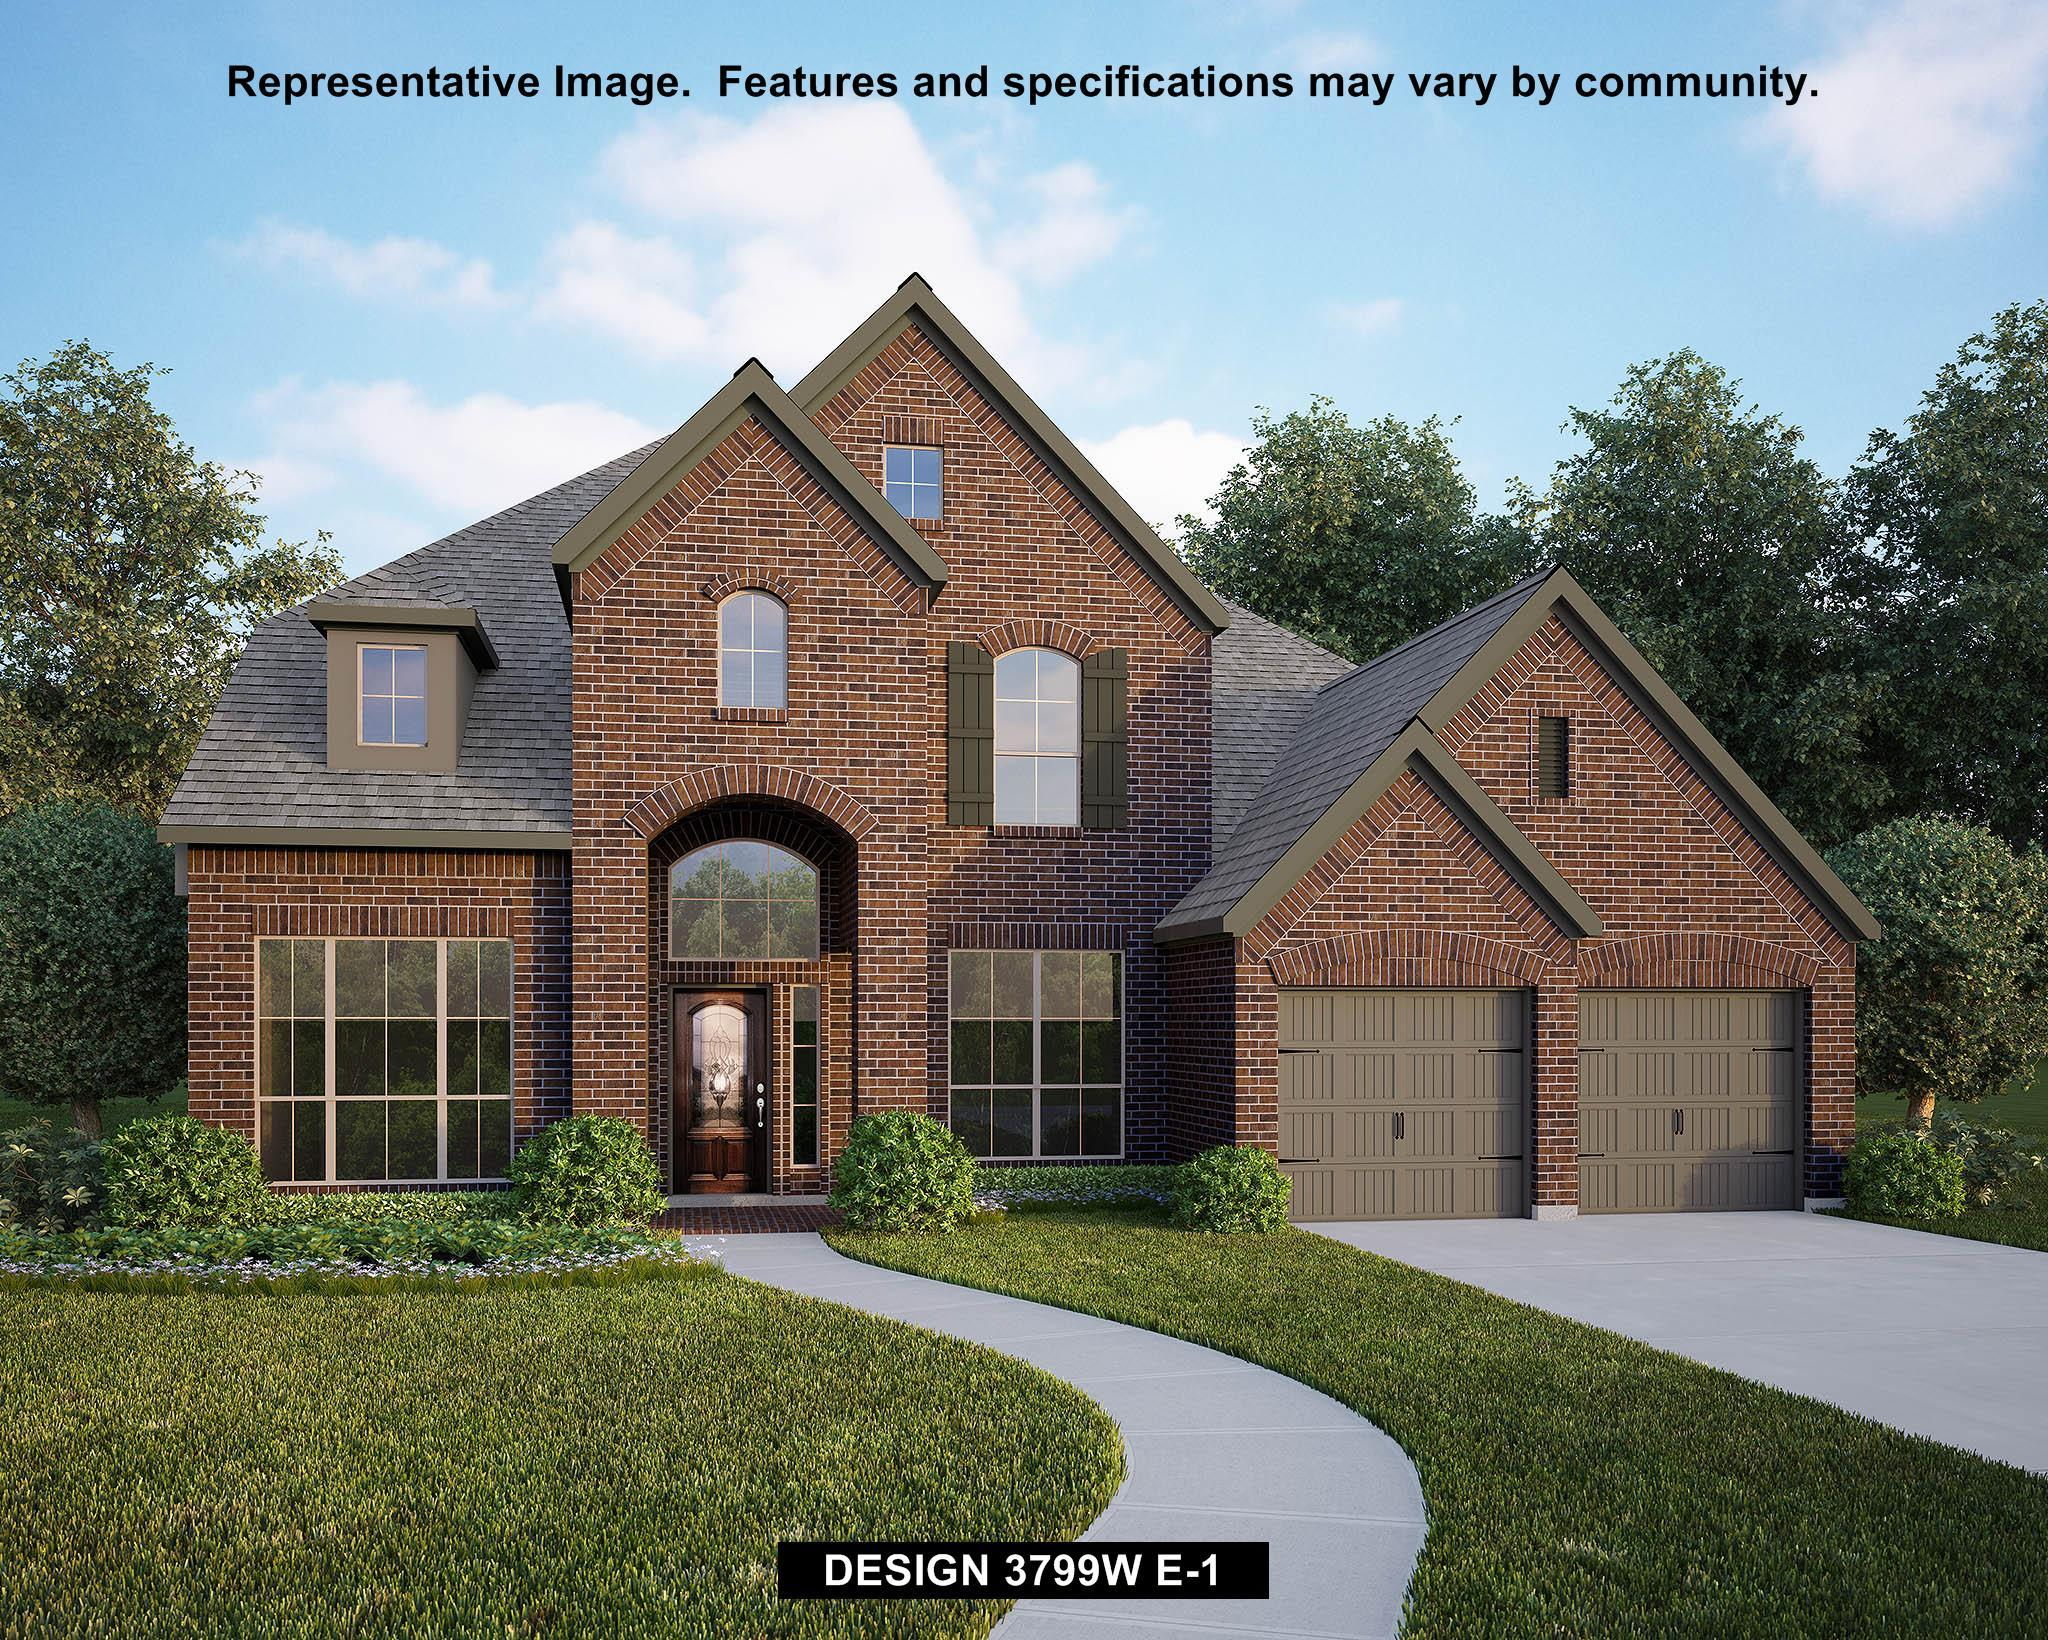 Single Family for Sale at The Village Of Mill Creek 60' - 3799w 2863 Coral Way Seguin, Texas 78155 United States